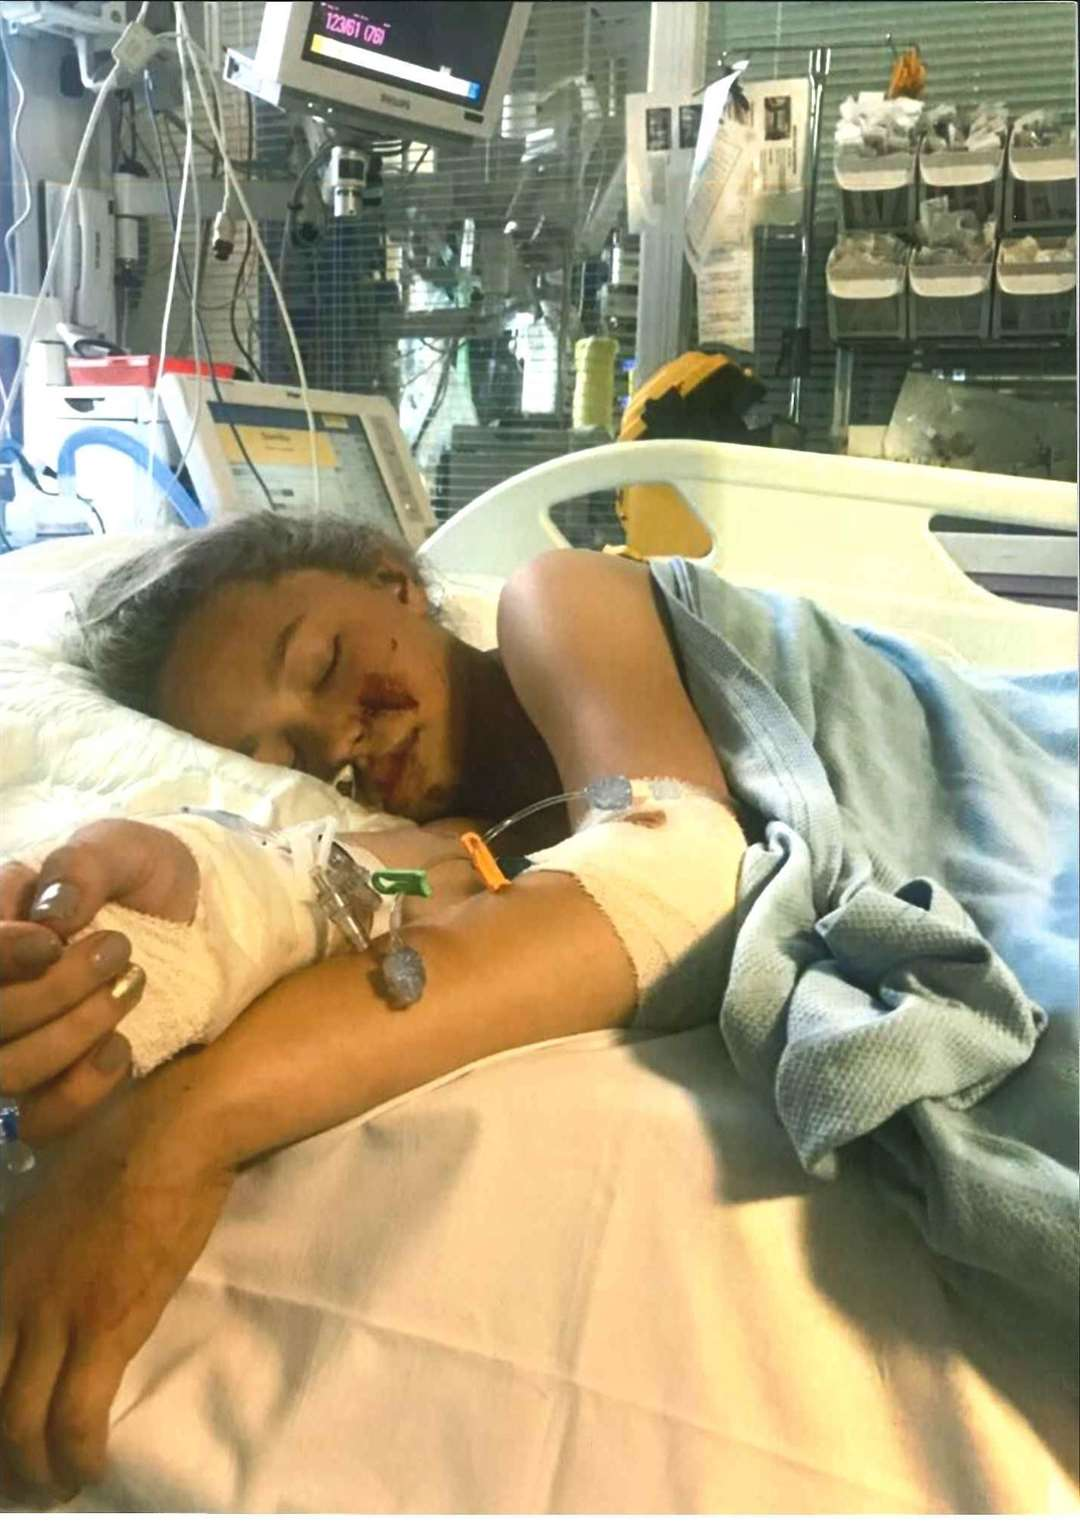 Gracie Maddox at King's hospital on life support following a tragic accident on Fleet Estate, Dartford on June 26, 2017. Picture: Caitlin Webb, Local democracy reporter (4147229)